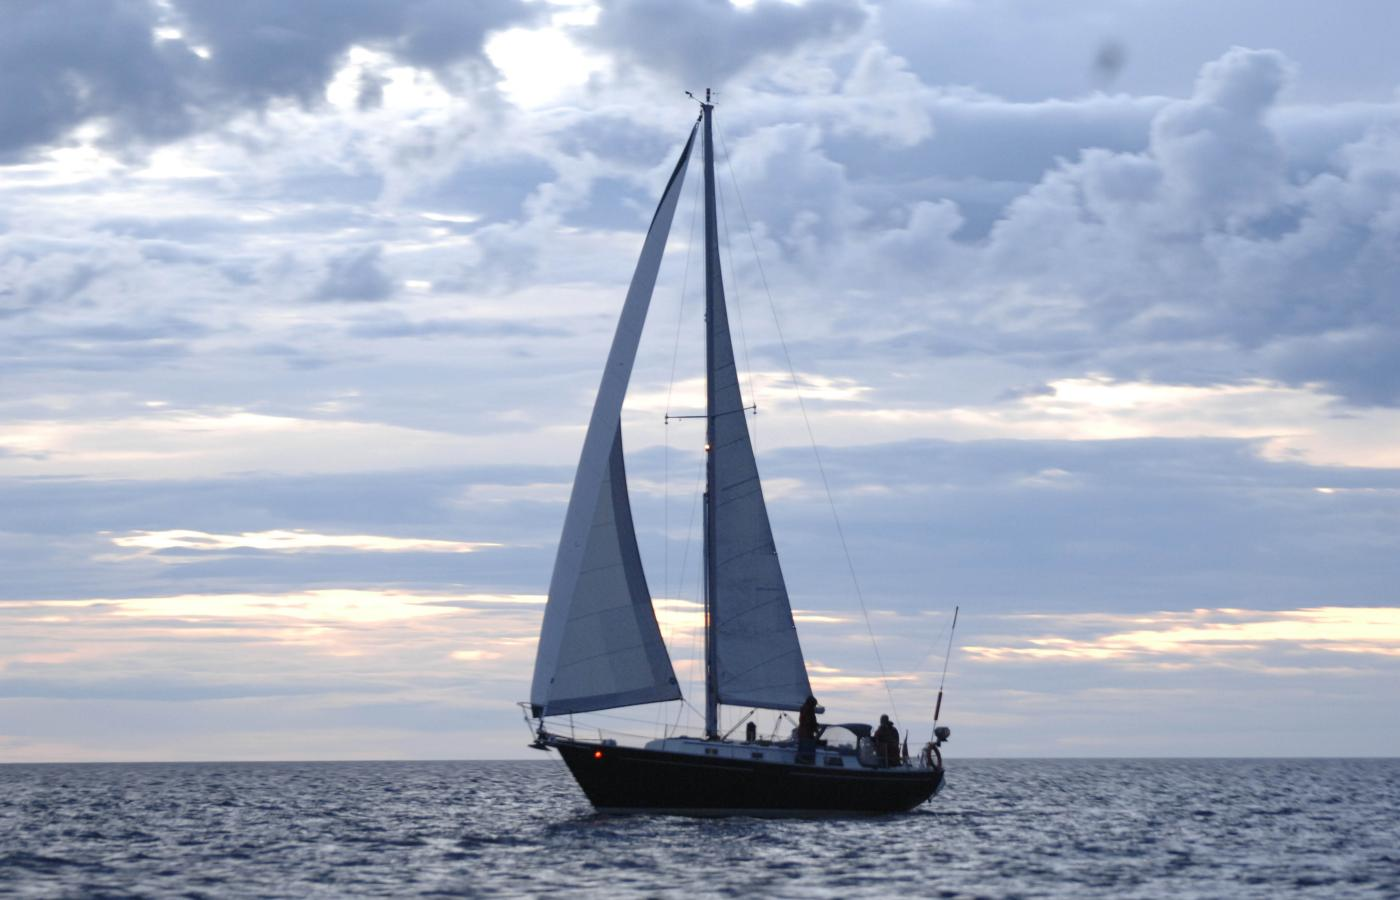 Sailing on Great Slave Lake, NWT, the deepest lake in Canada.